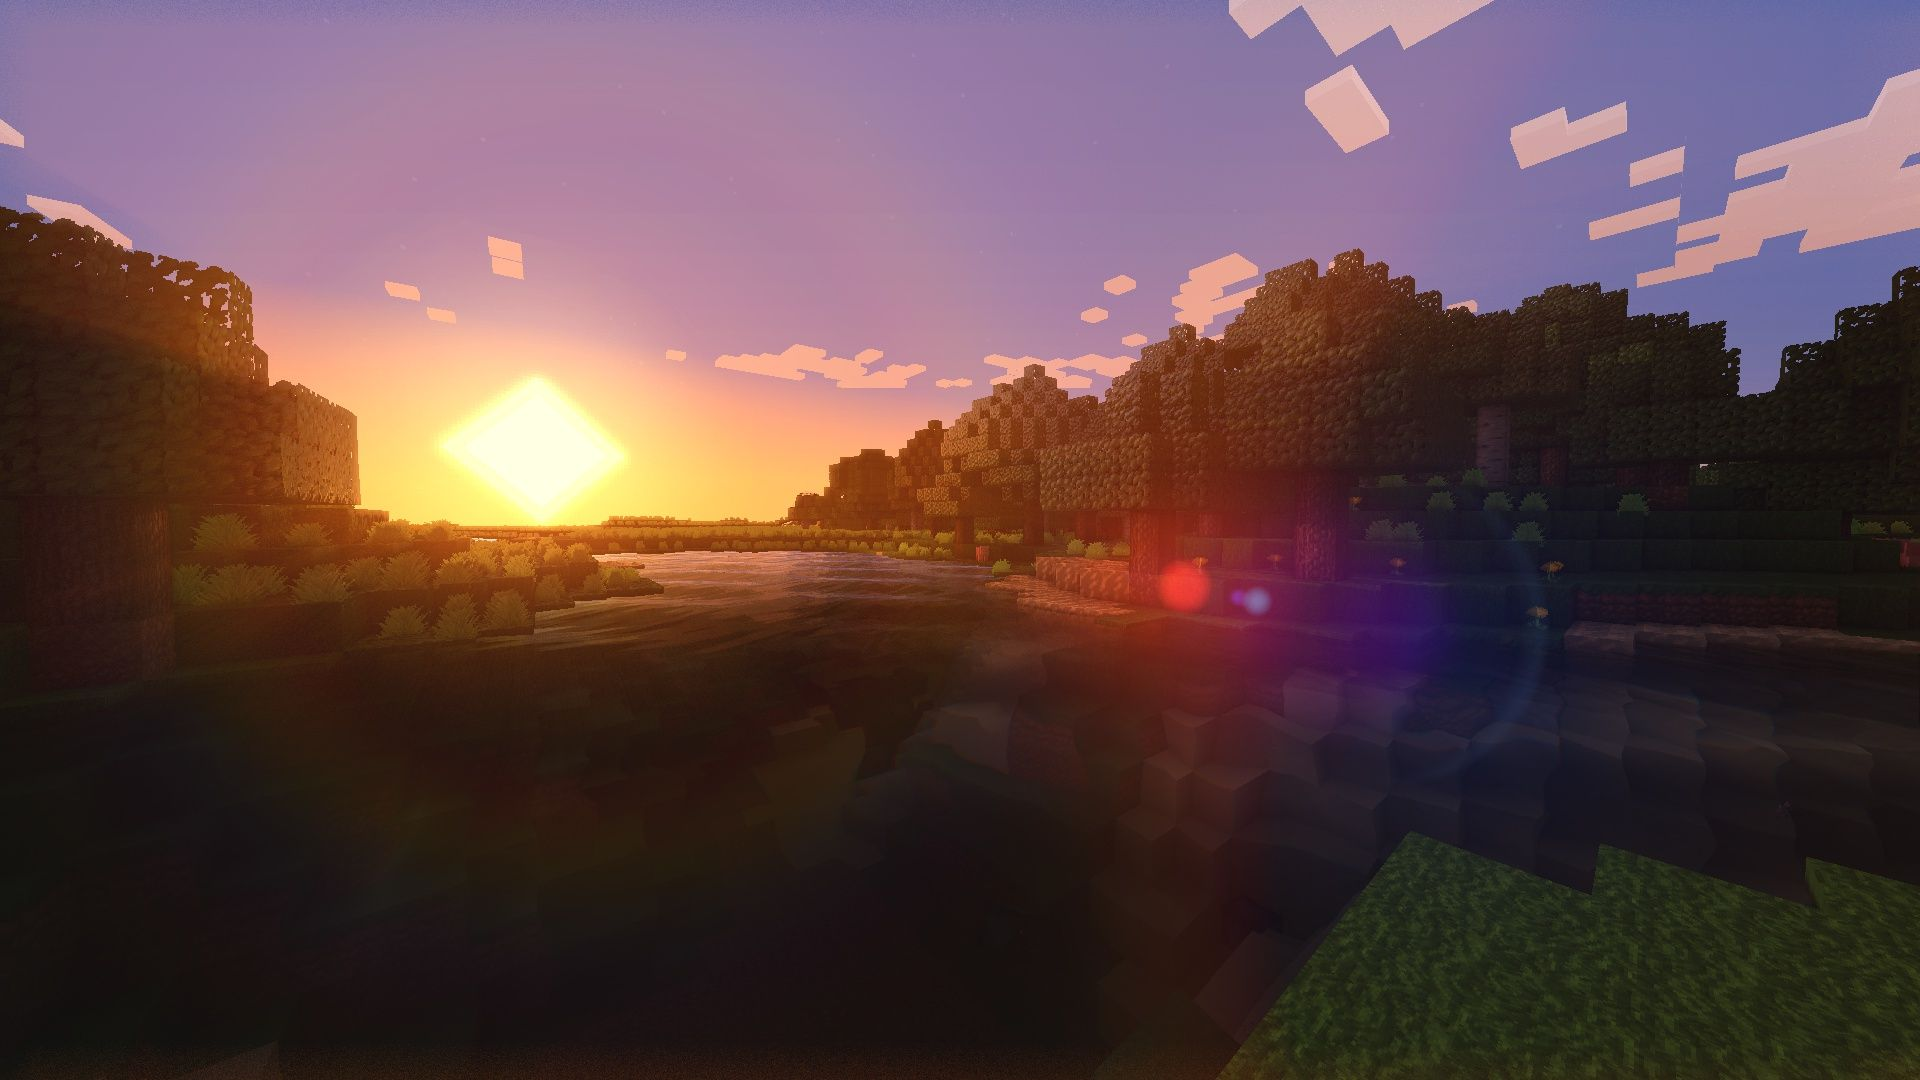 Minecraft Shaders Sunsetviewing Gallery For Minecraft Shaders Sunset Tb9xpunf Jpg 1920 1080 Minecraft Shaders Minecraft Wallpaper Fantasy Landscape